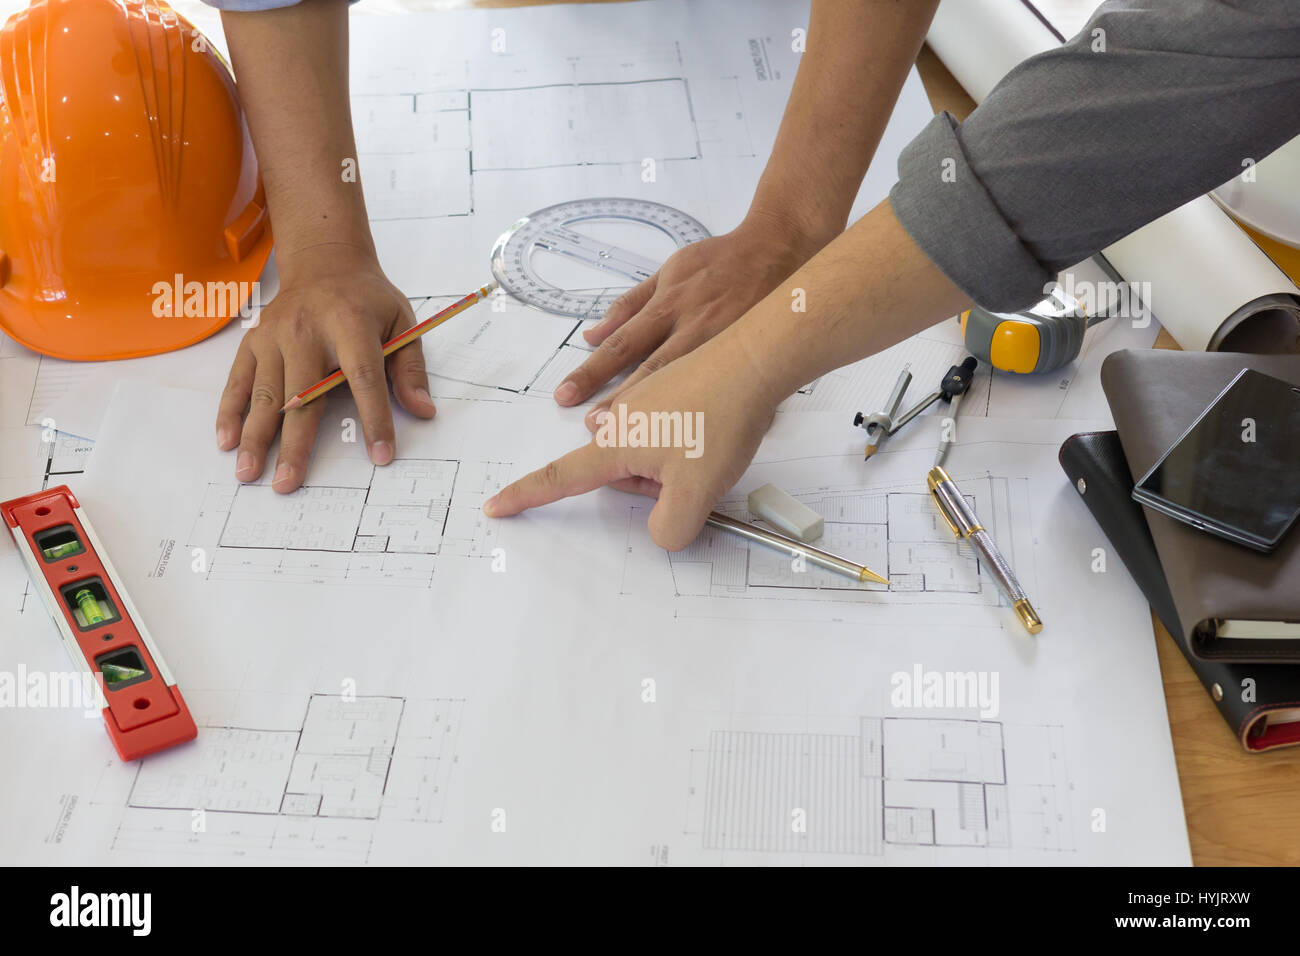 Architectural abstract drawing stock photos architectural abstract architect working on blueprint architects workplace architectural project blueprints ruler calculator malvernweather Images